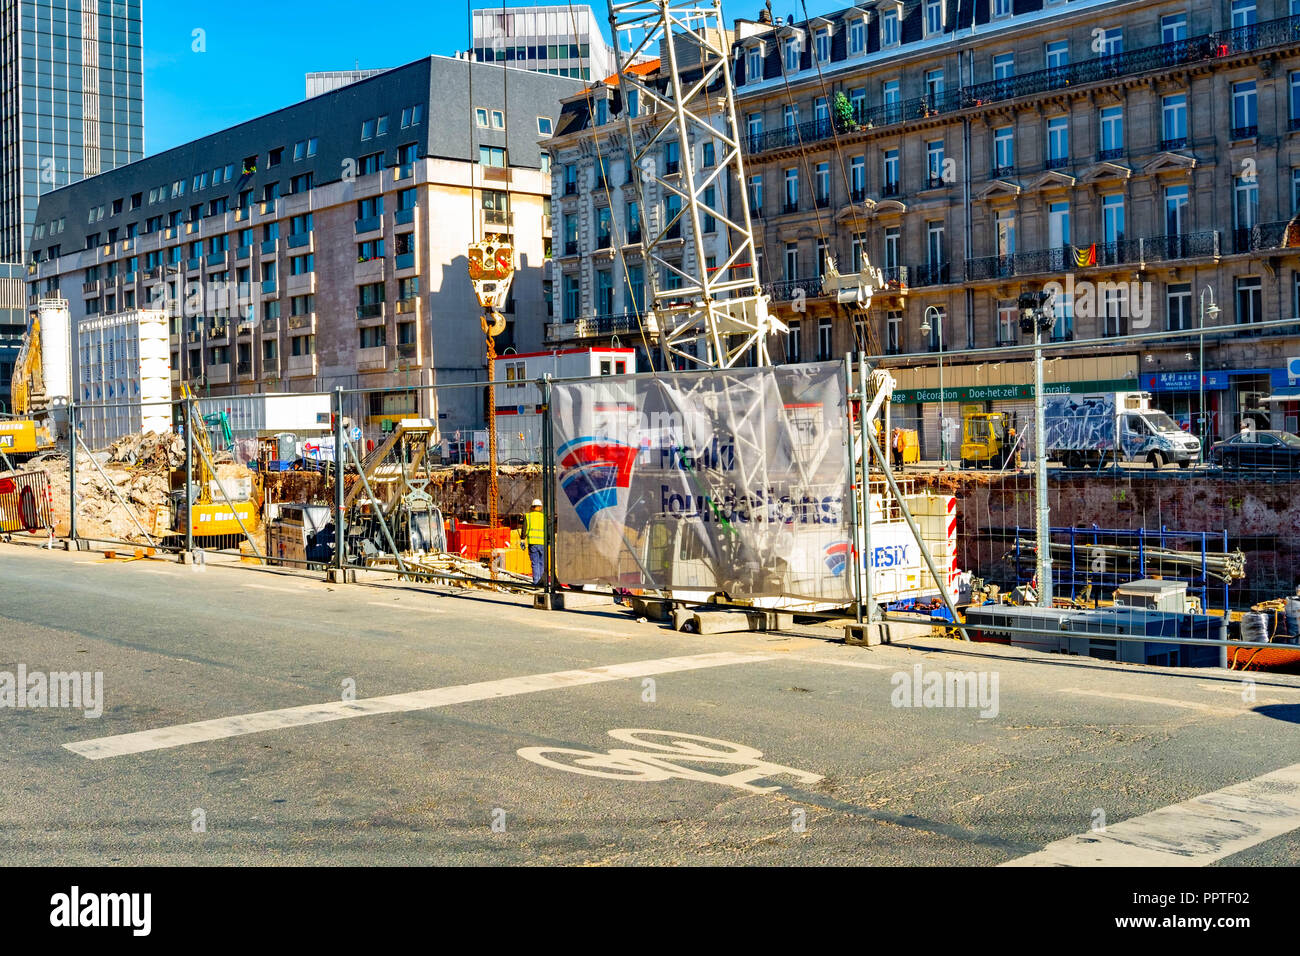 Building Site - Stock Image